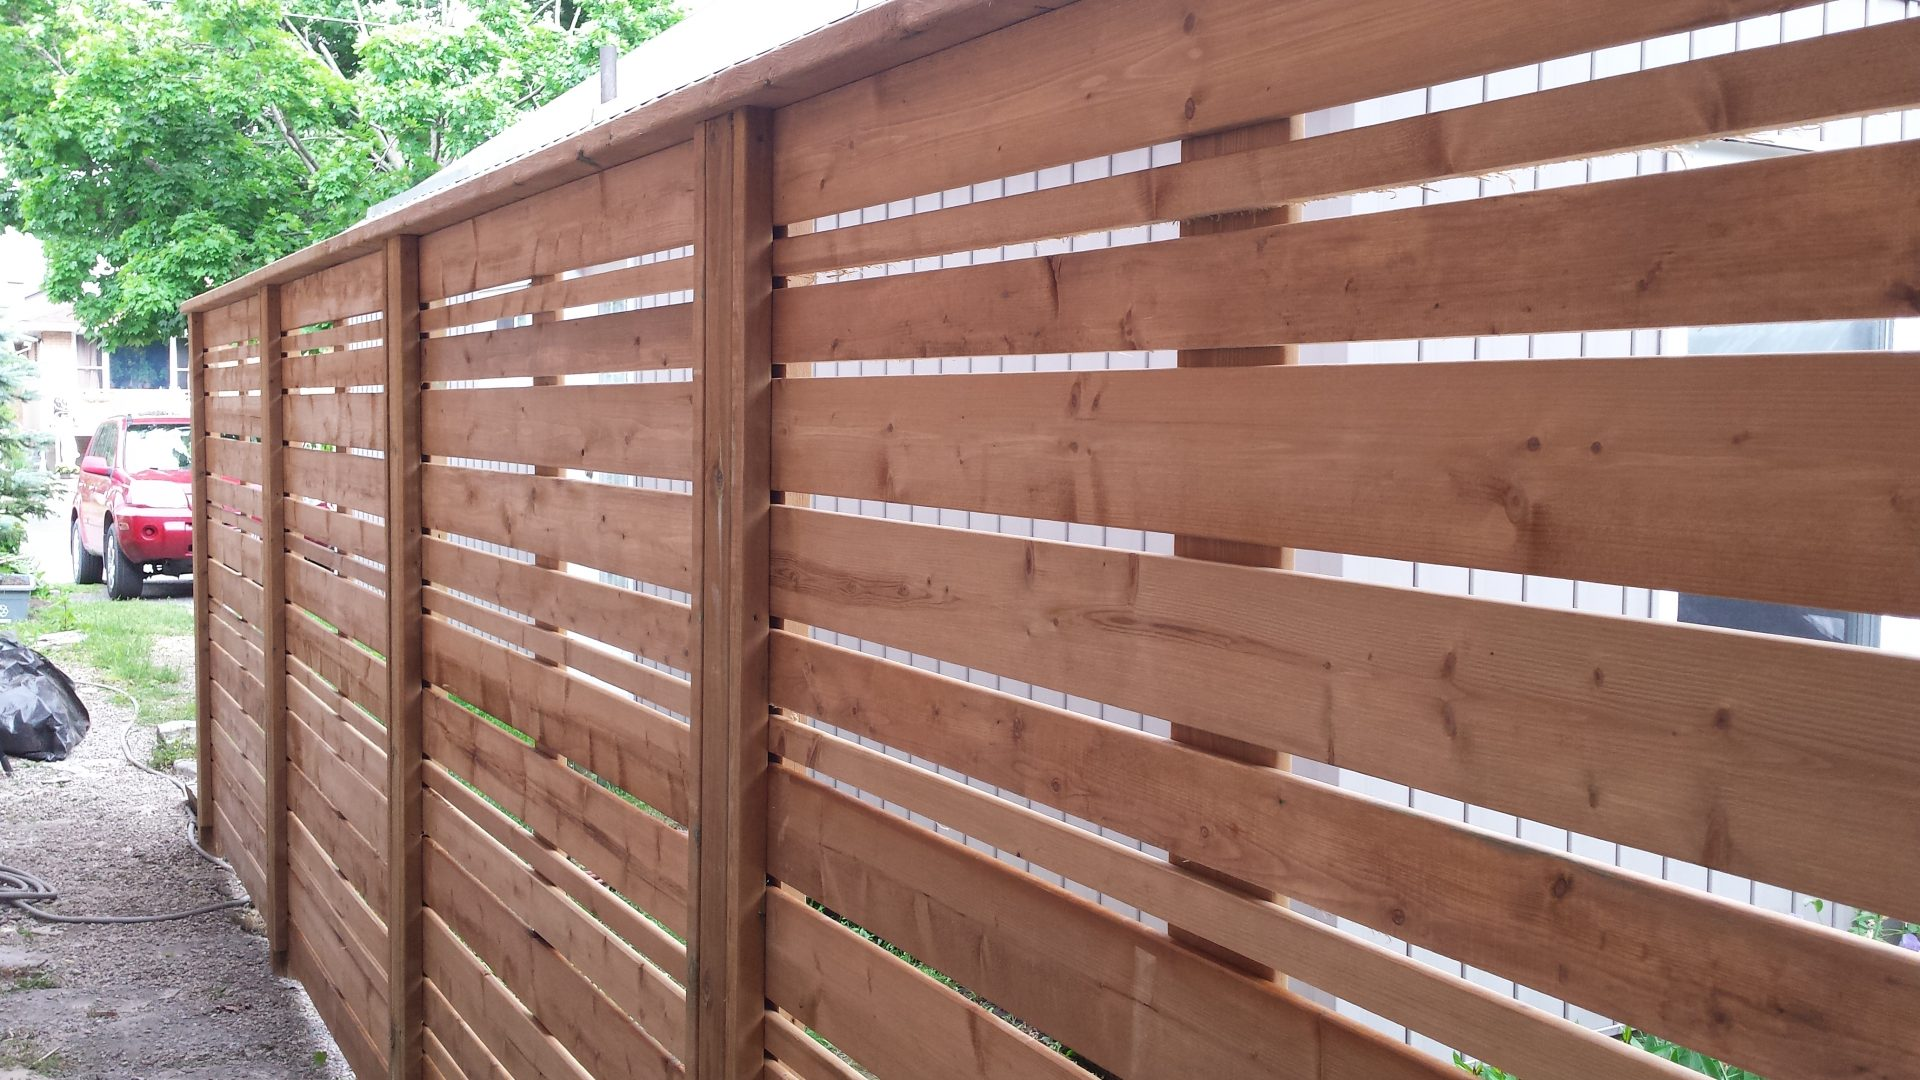 Horizontal Fence in Sienna Brown